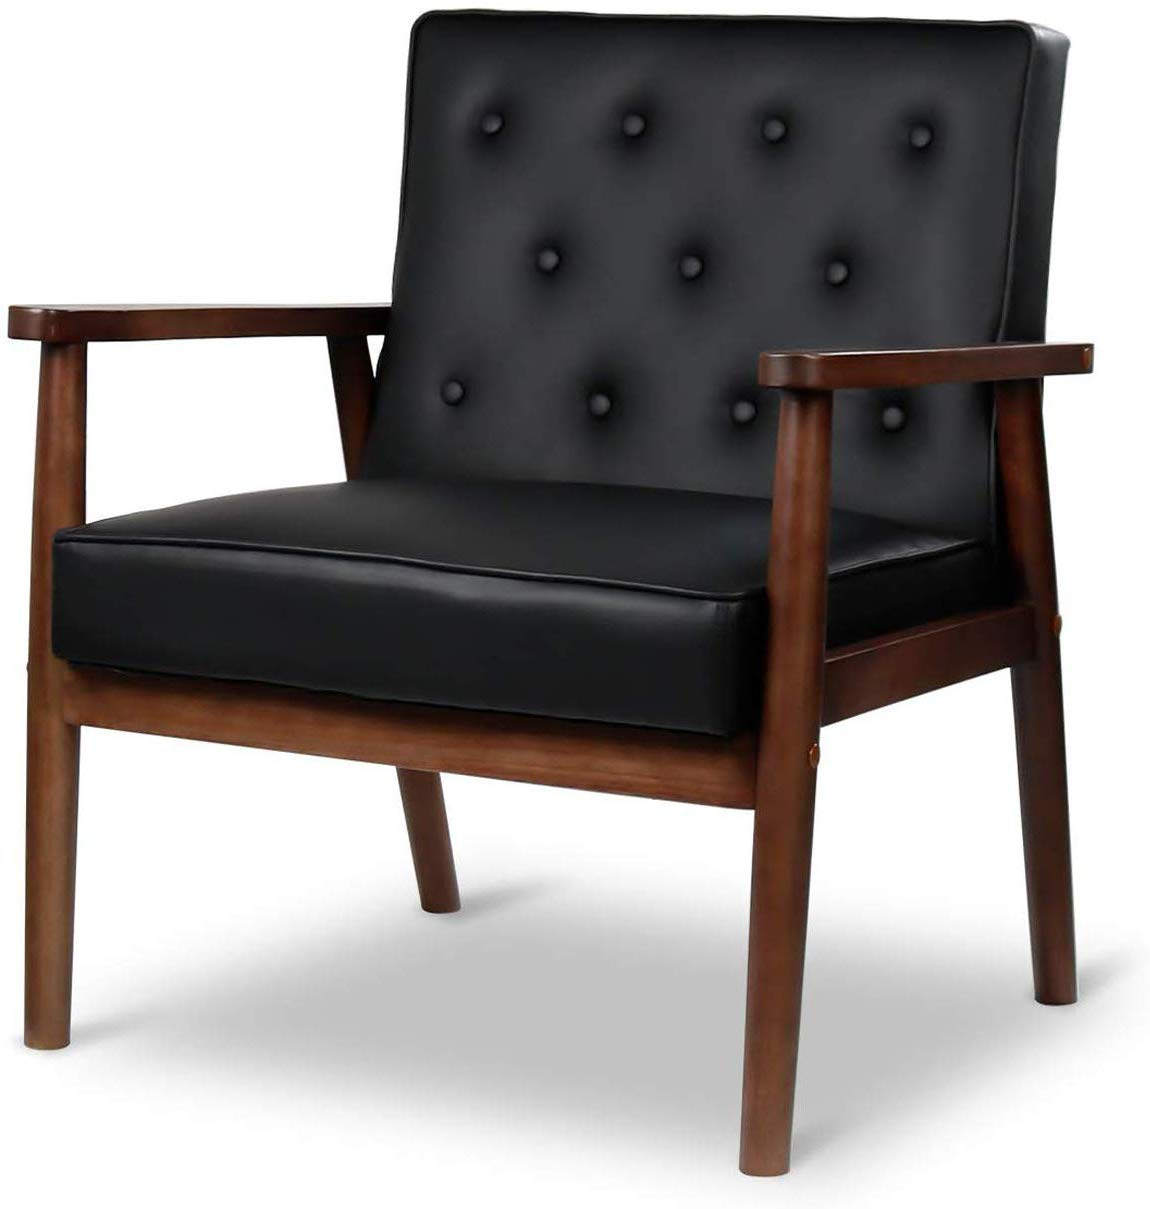 JOYBASE Mid-Century Retro Modern Accent Chair – Wood Frame and PU Leather Upholstered, Arm Chair for Living Room Black